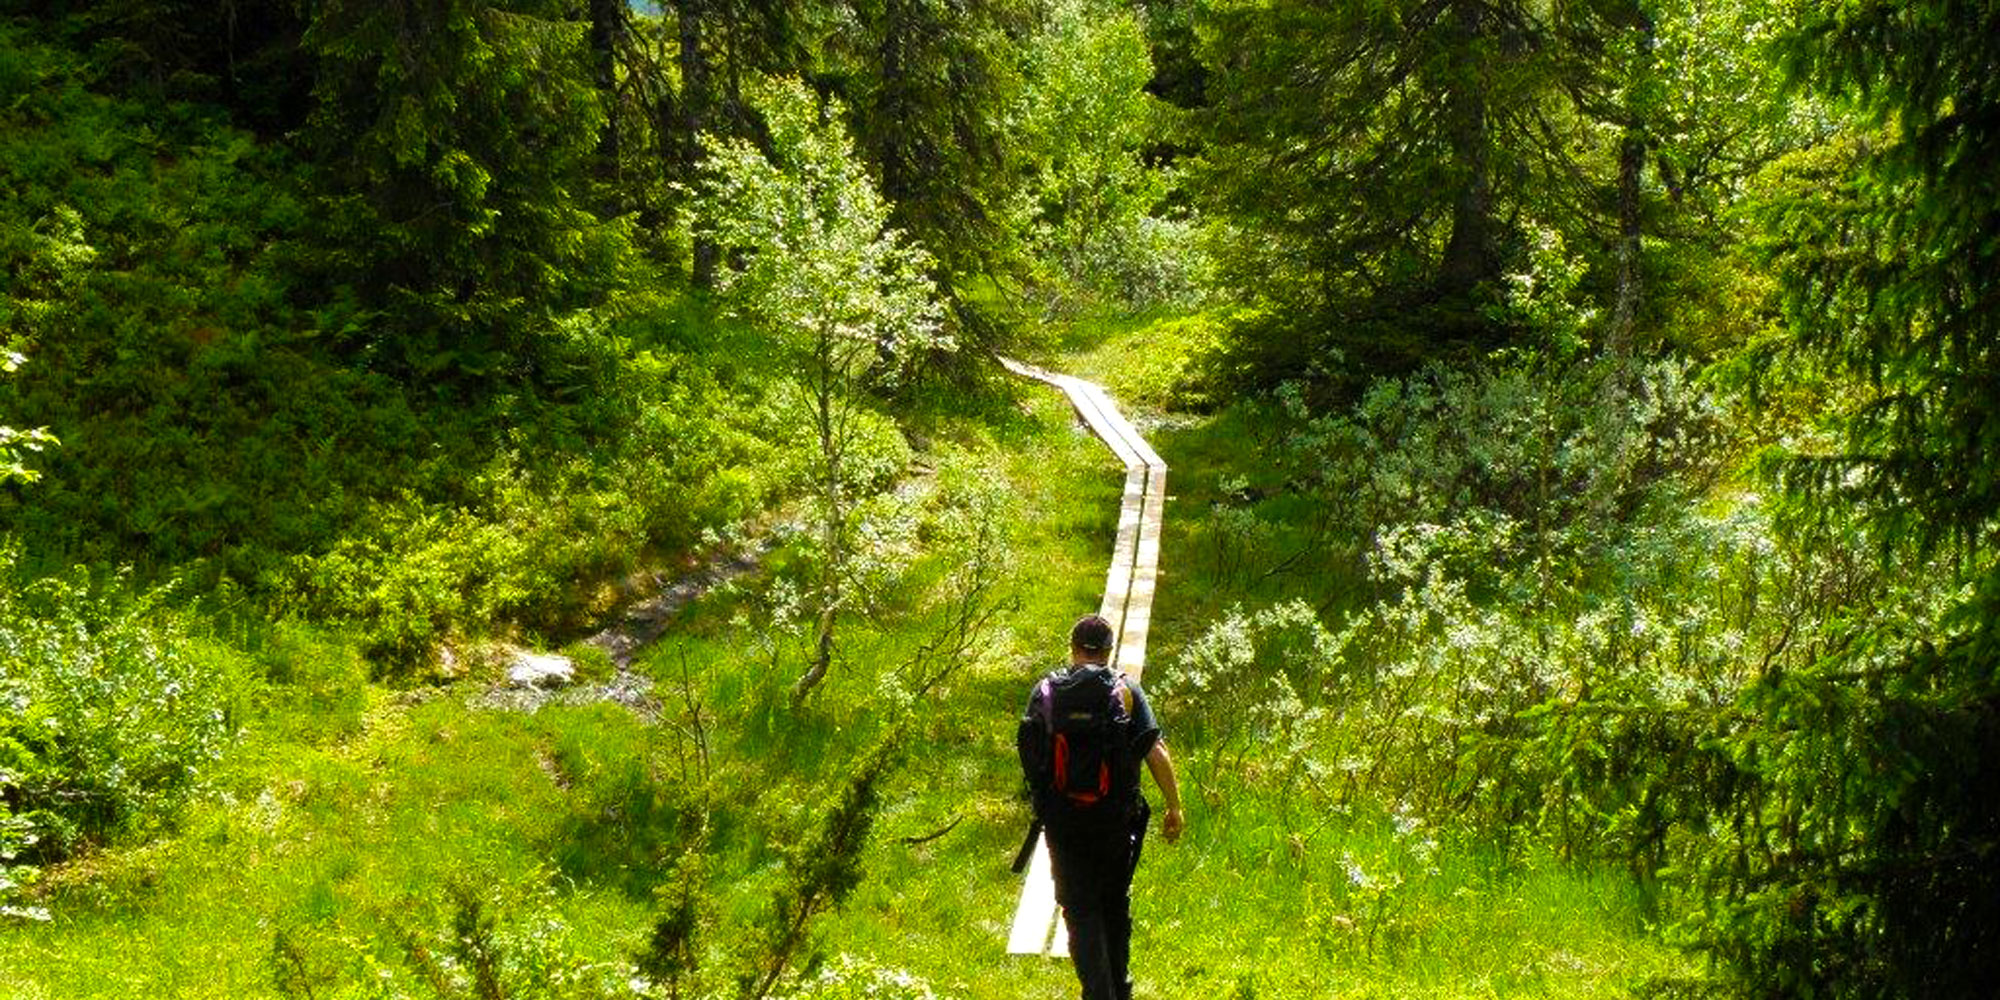 Ismenningen Lodge & Cabin rental fabulous hiking routes nearby. Copyright: Ismenningen